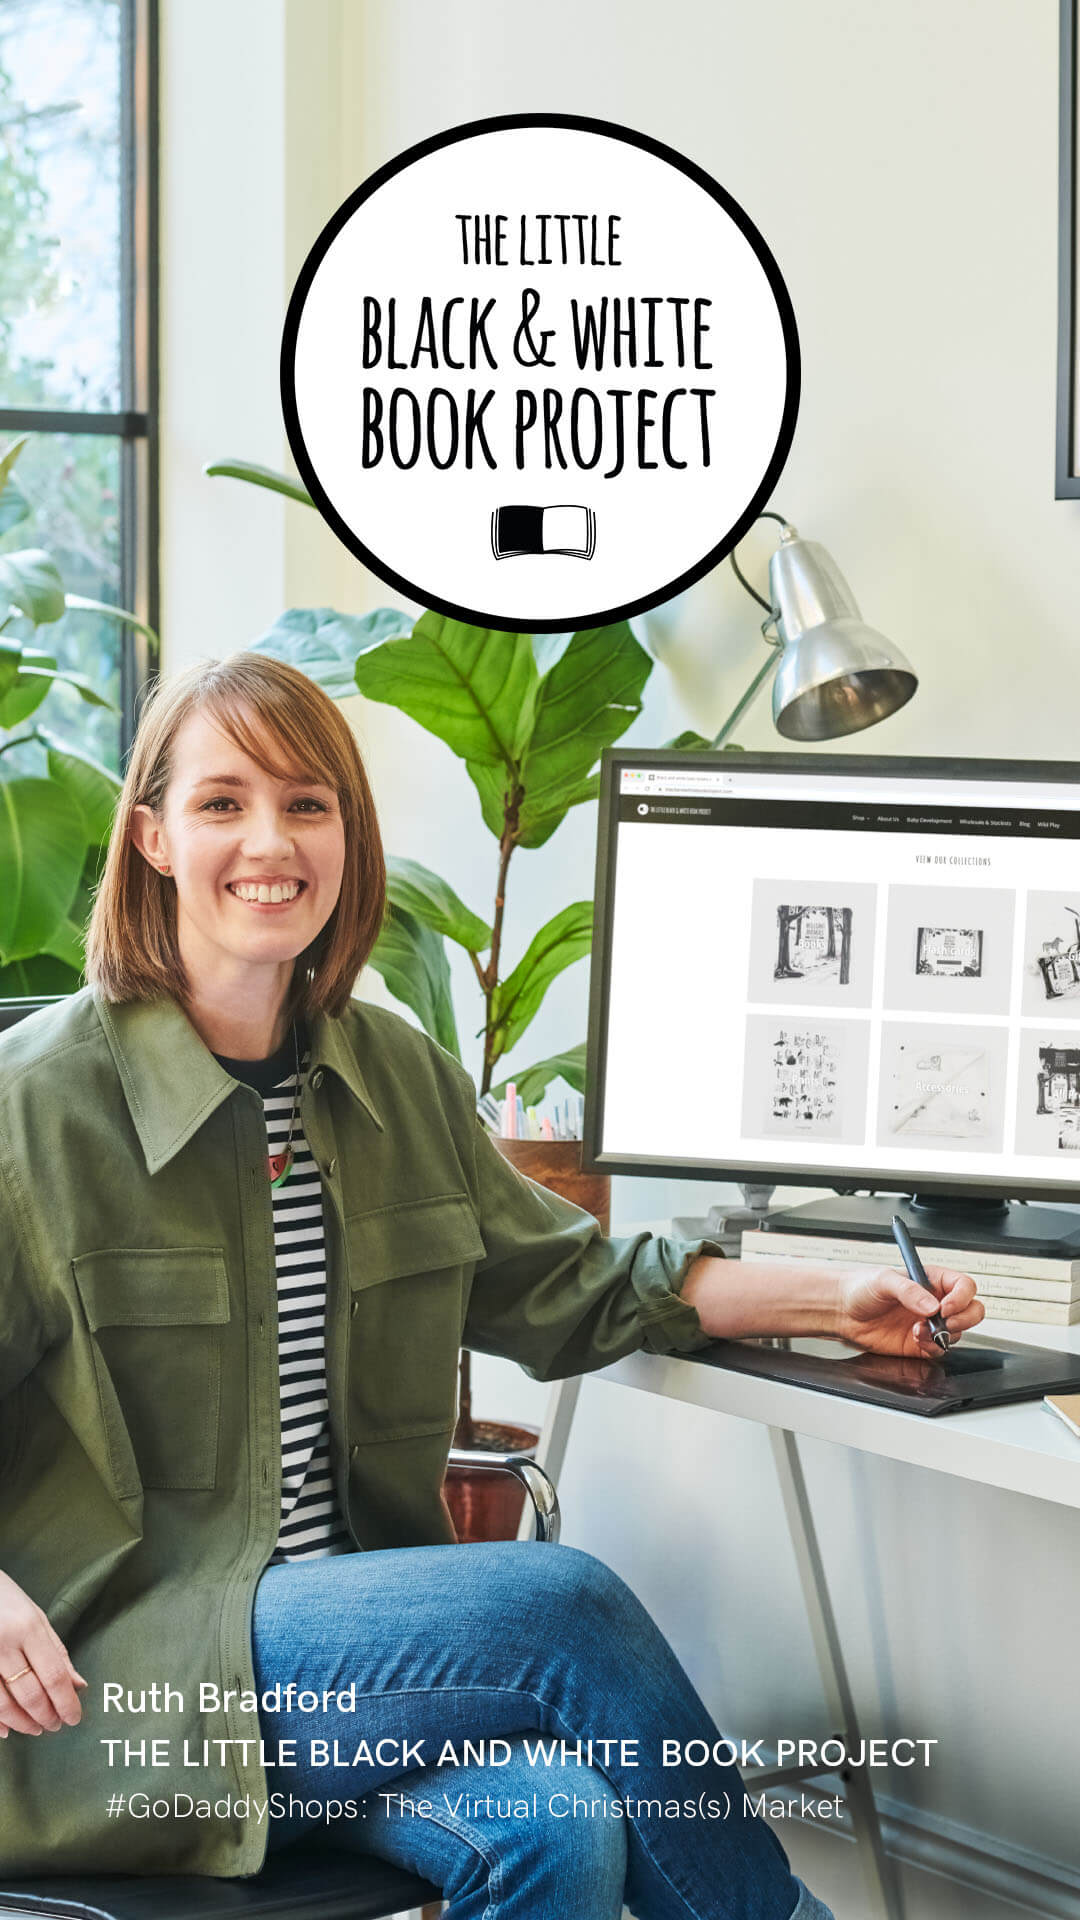 More about The Little Back and White Book Project